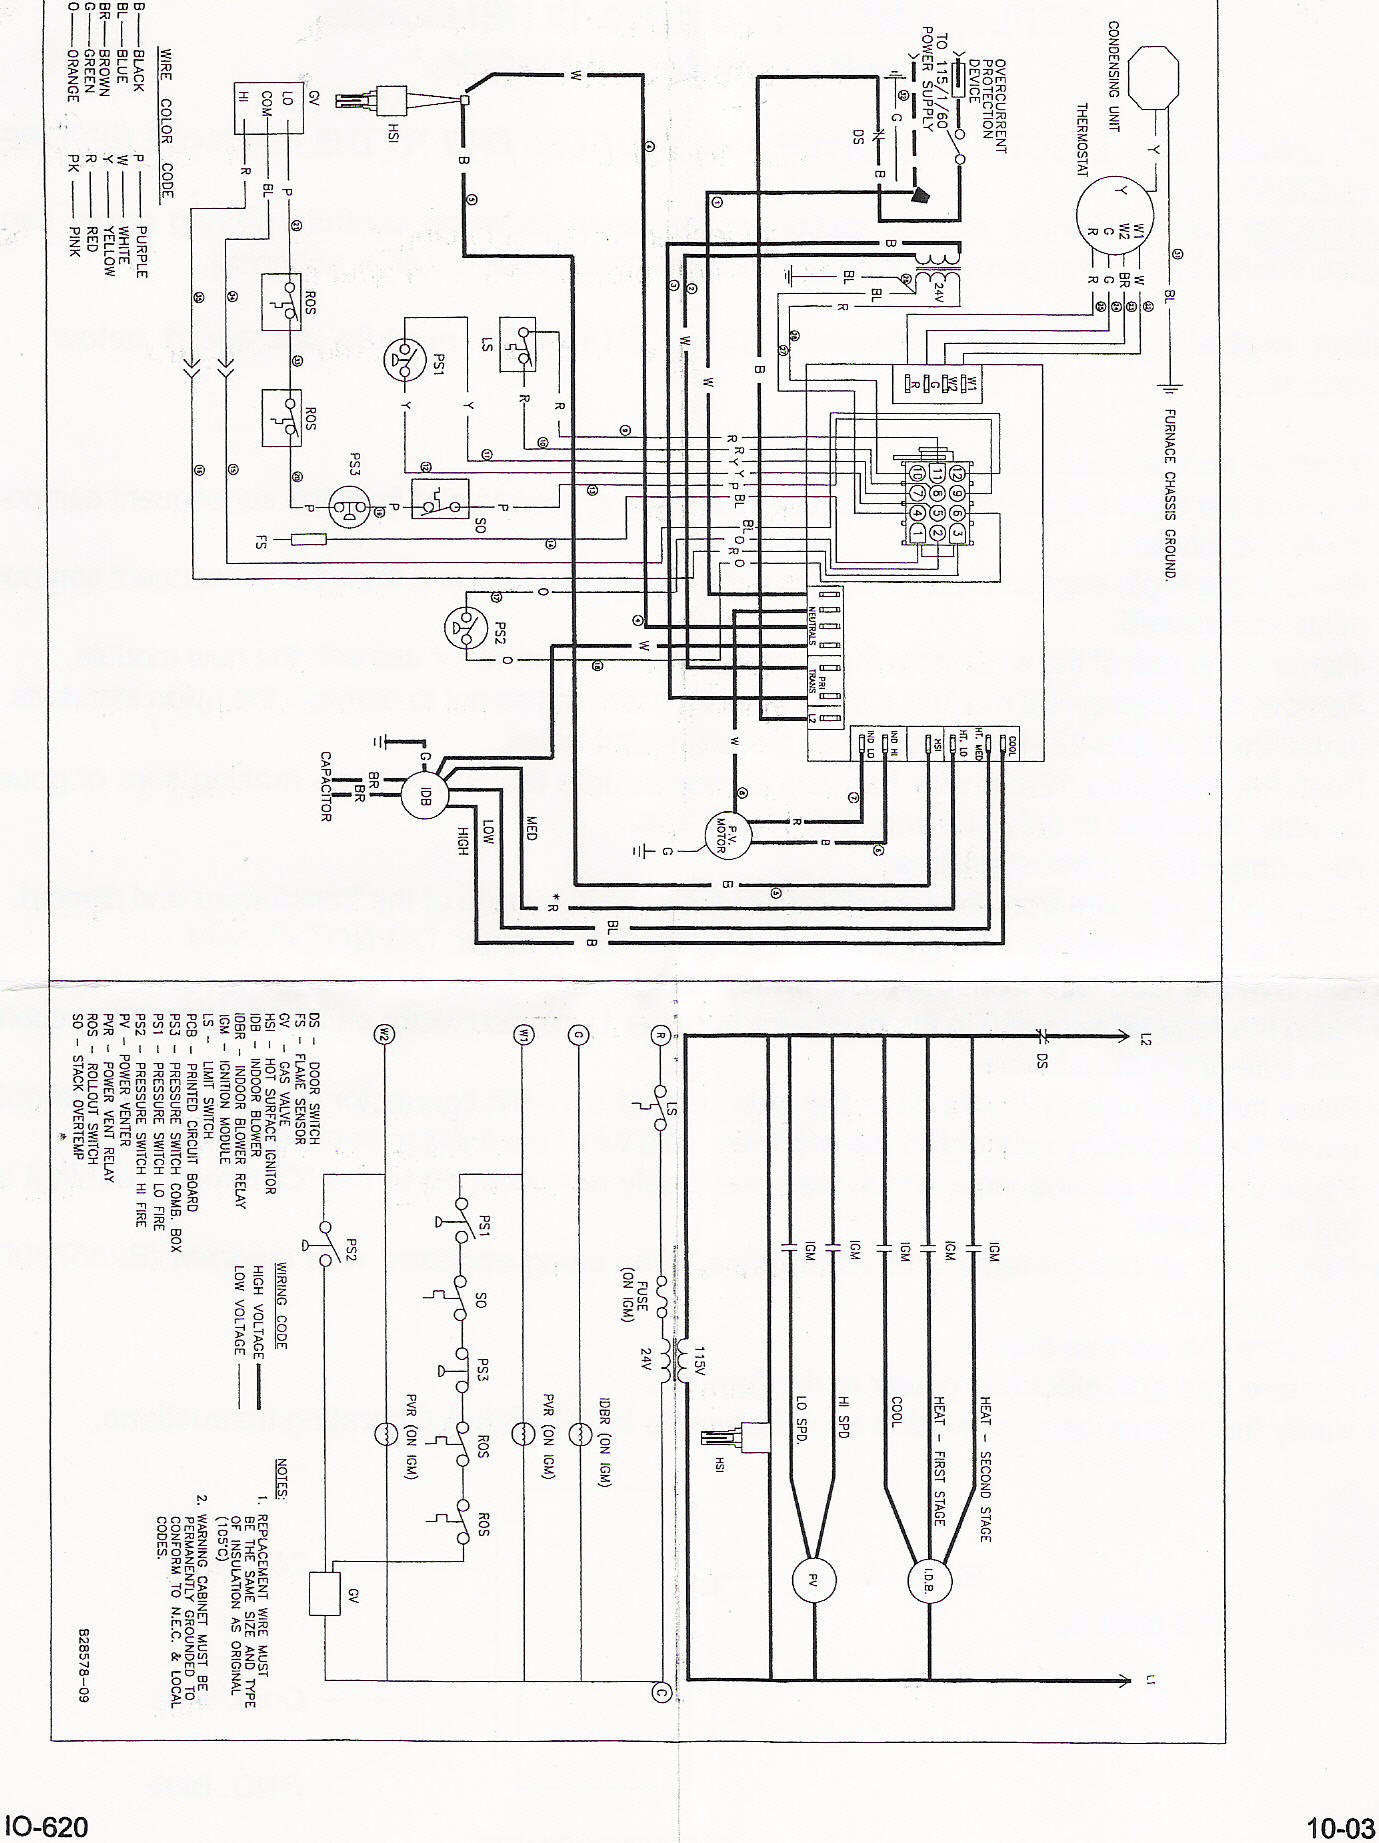 Superb Strip Heaters 3 Phase Wiring Diagram For Parallel Series Online Wiring Cloud Hisonuggs Outletorg